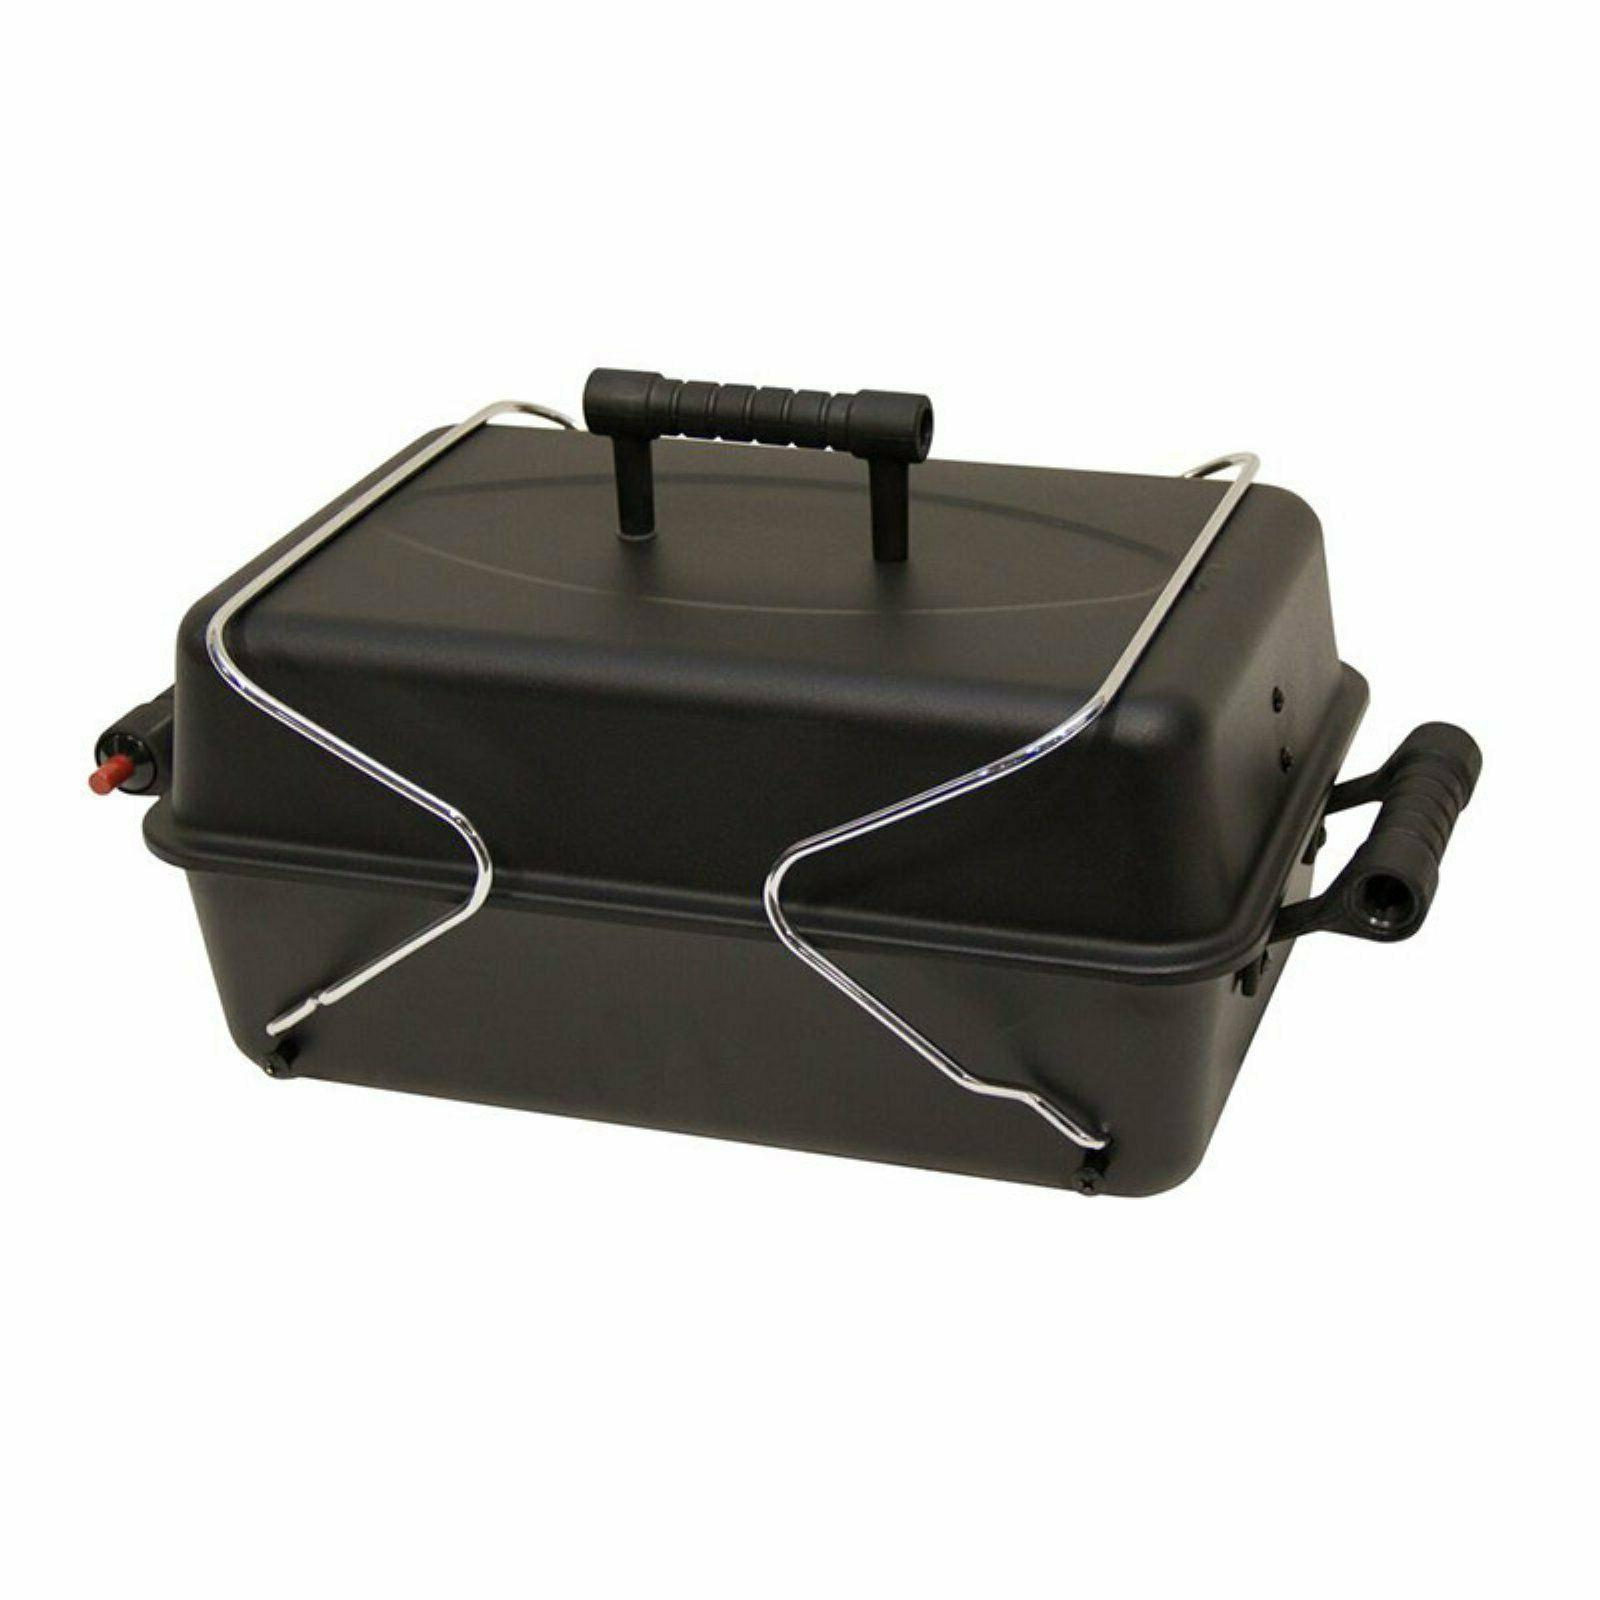 Deluxe Portable Gas Grill Tabletop RV NEW